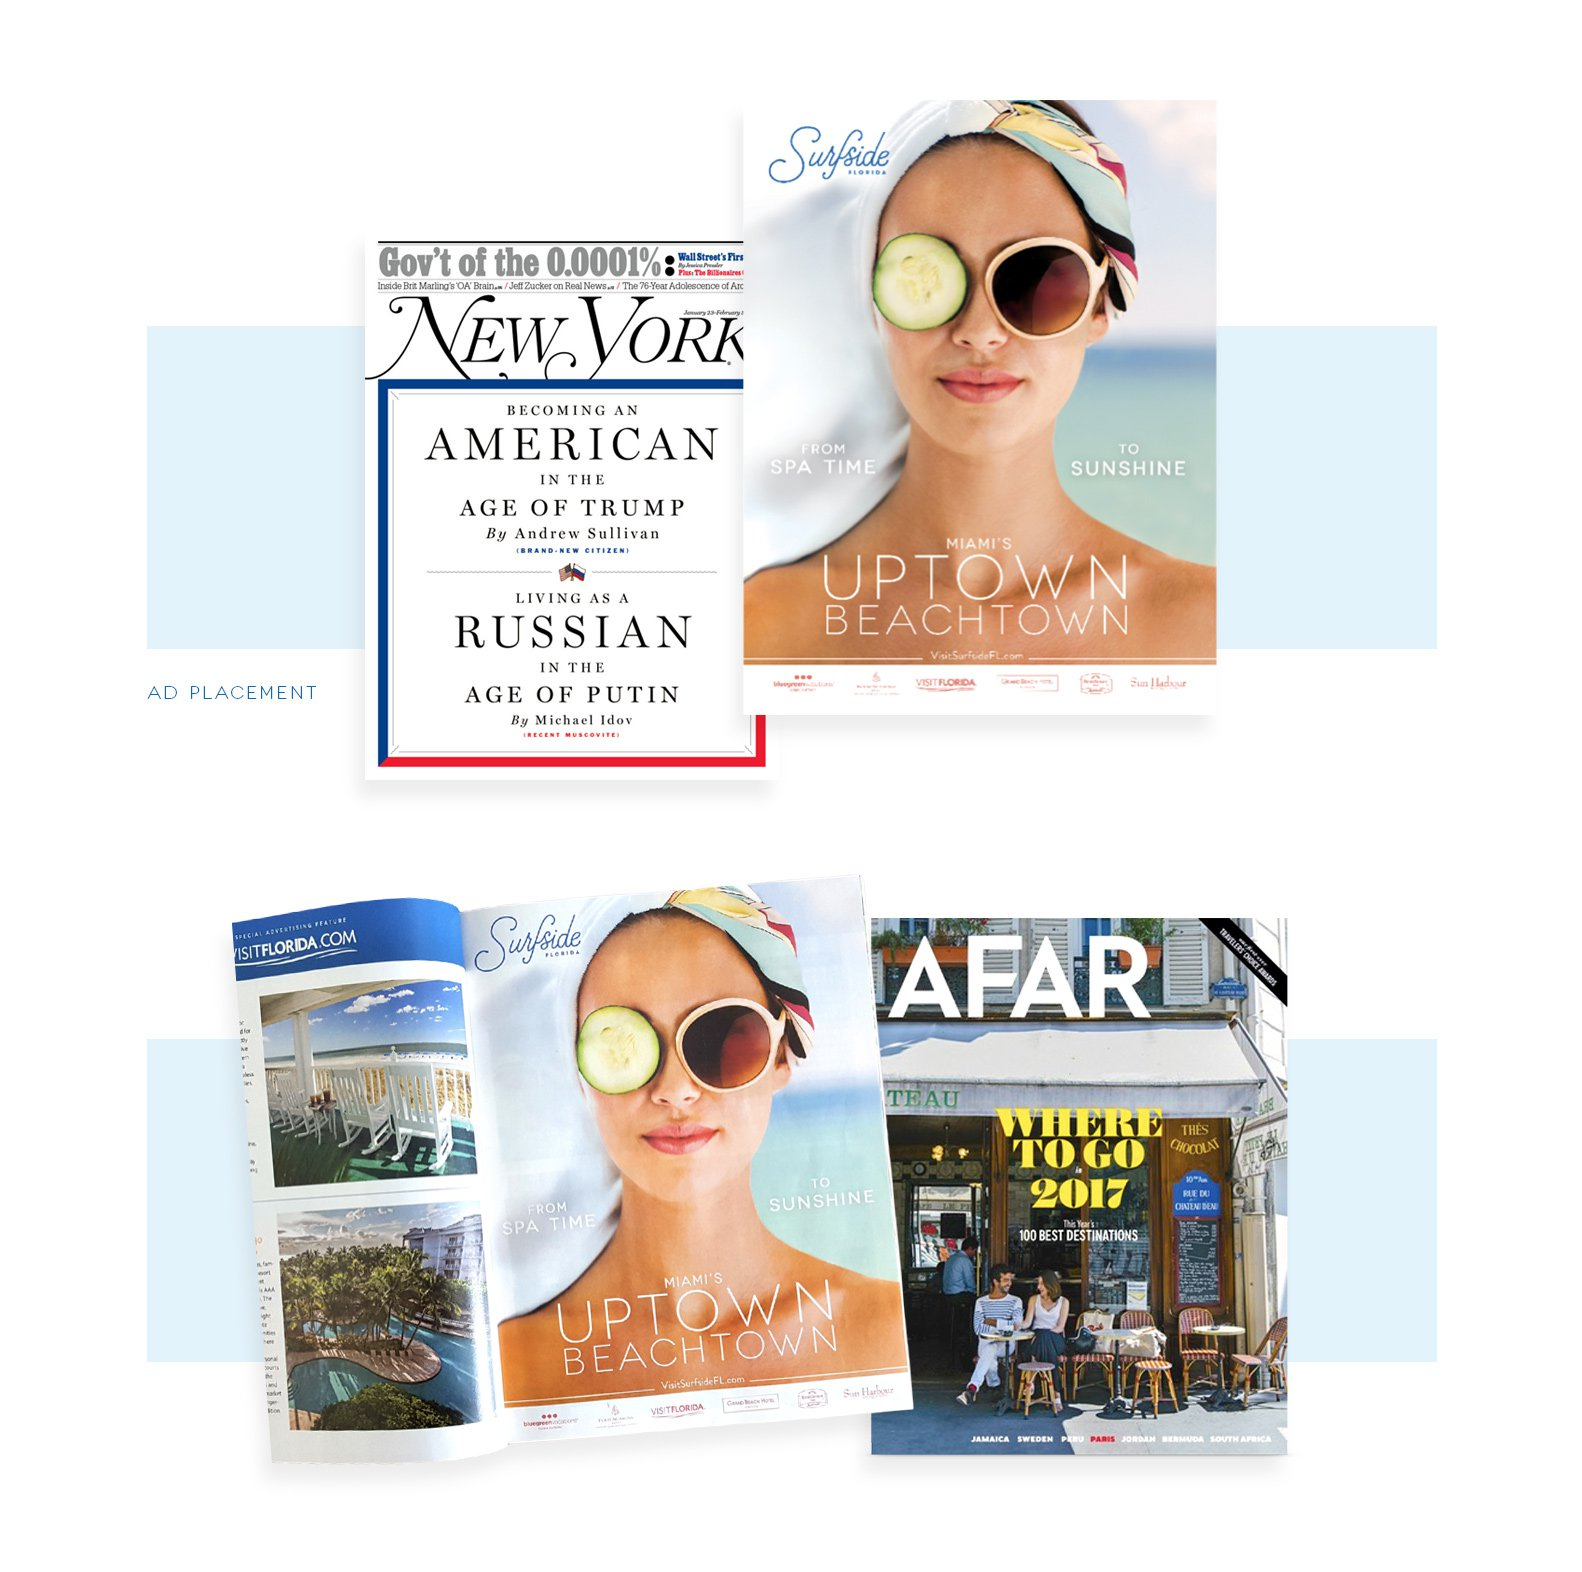 Jacober Creative Identity and Campaign for the Town of Surfside Florida - Photo of magazine ad featured in New York Magazine